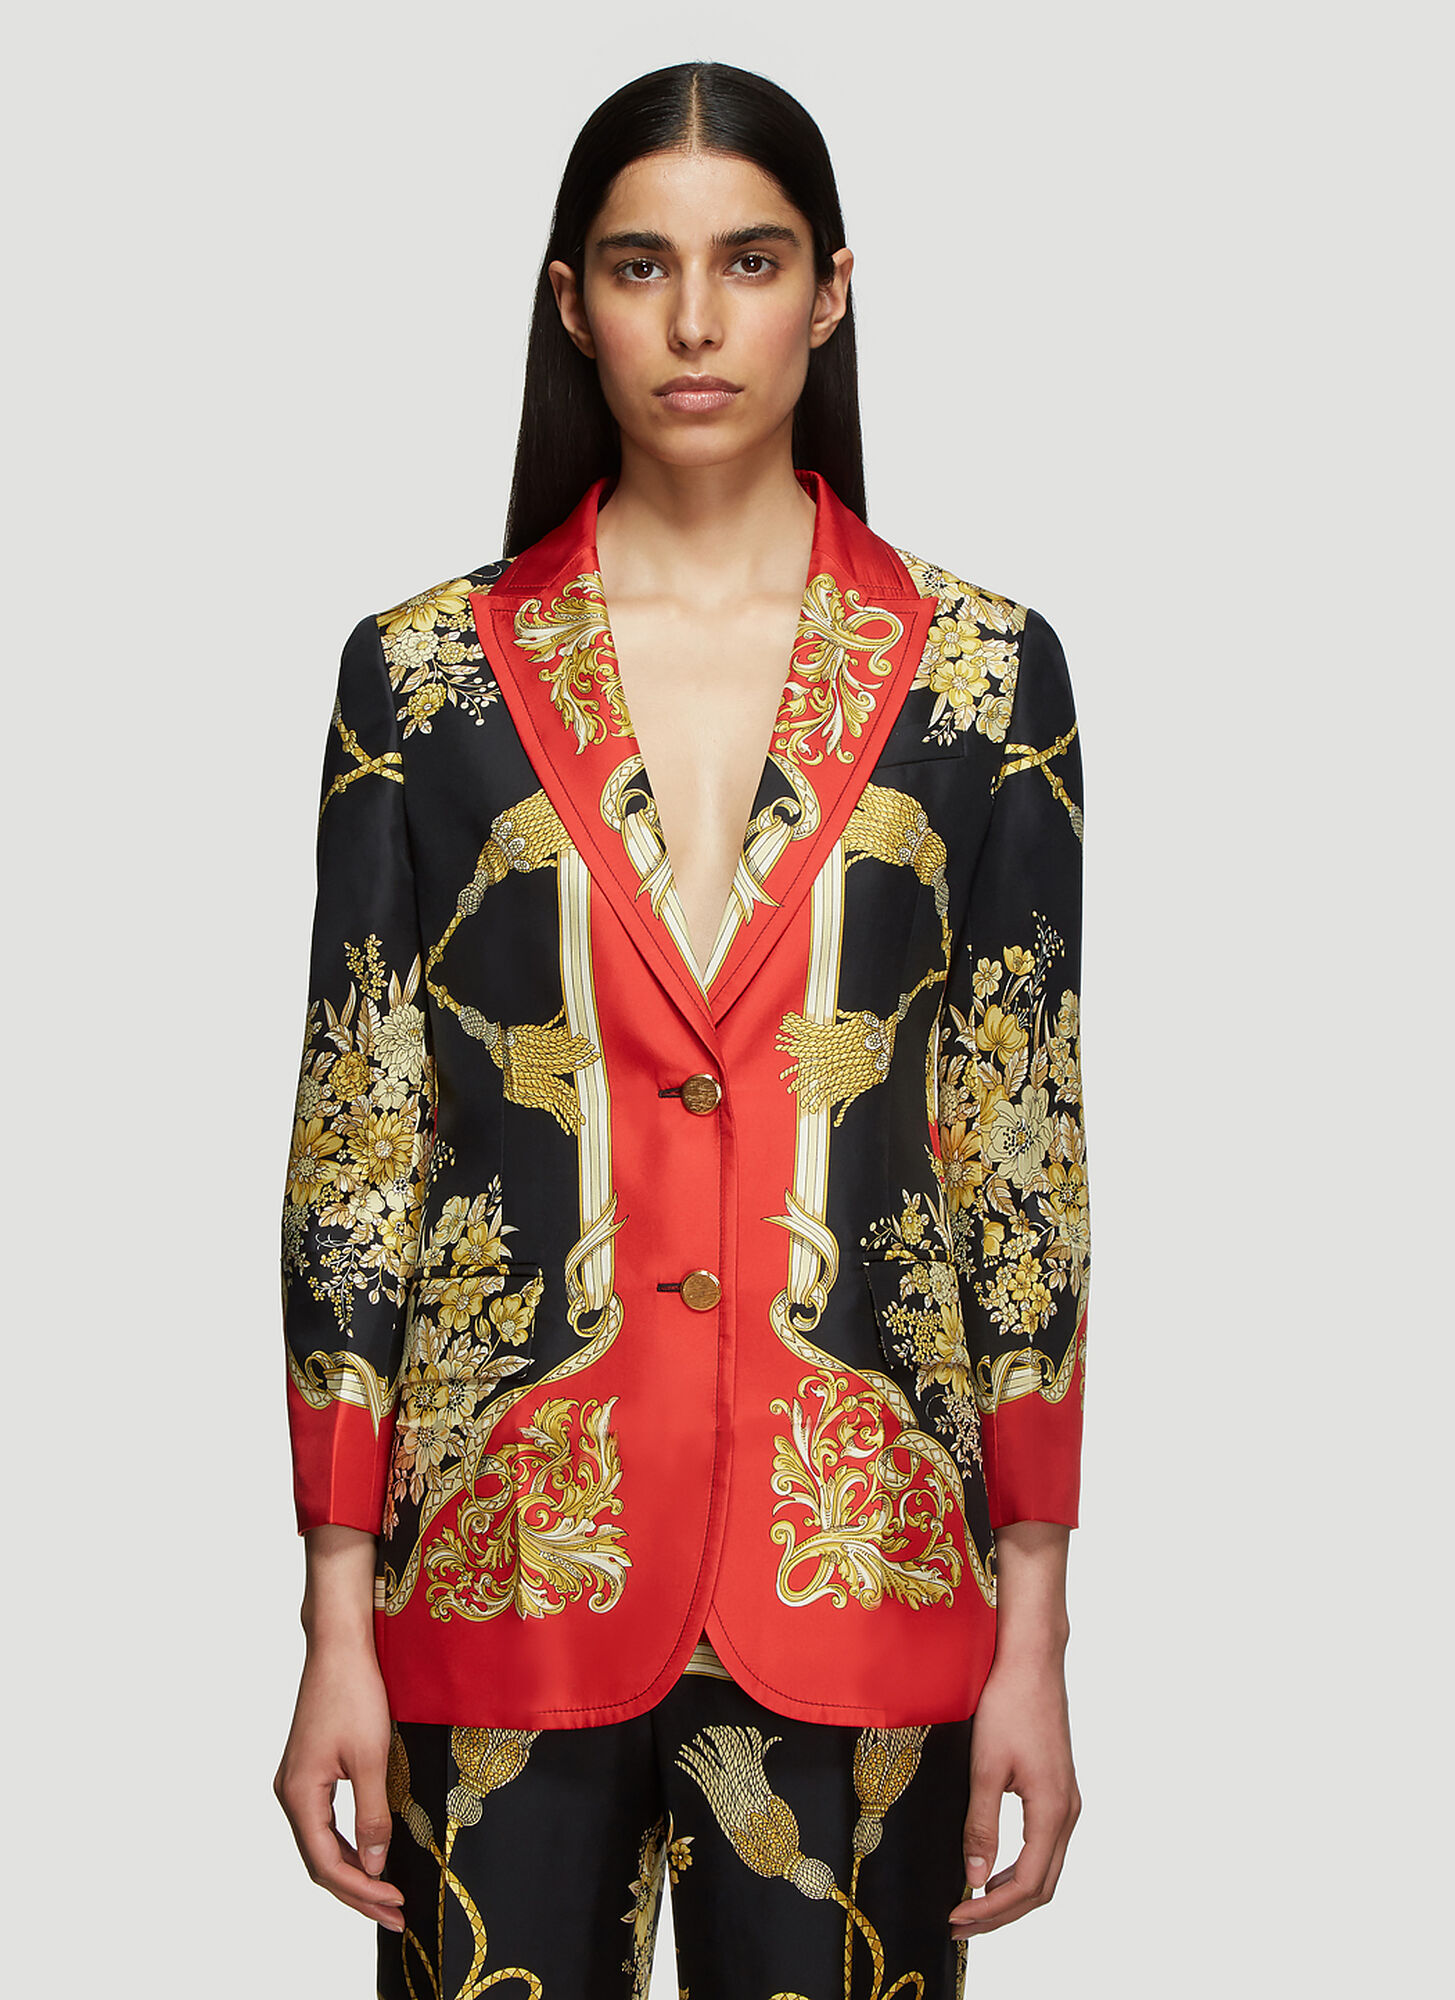 Gucci Flowers and Tassels Jacket in Red